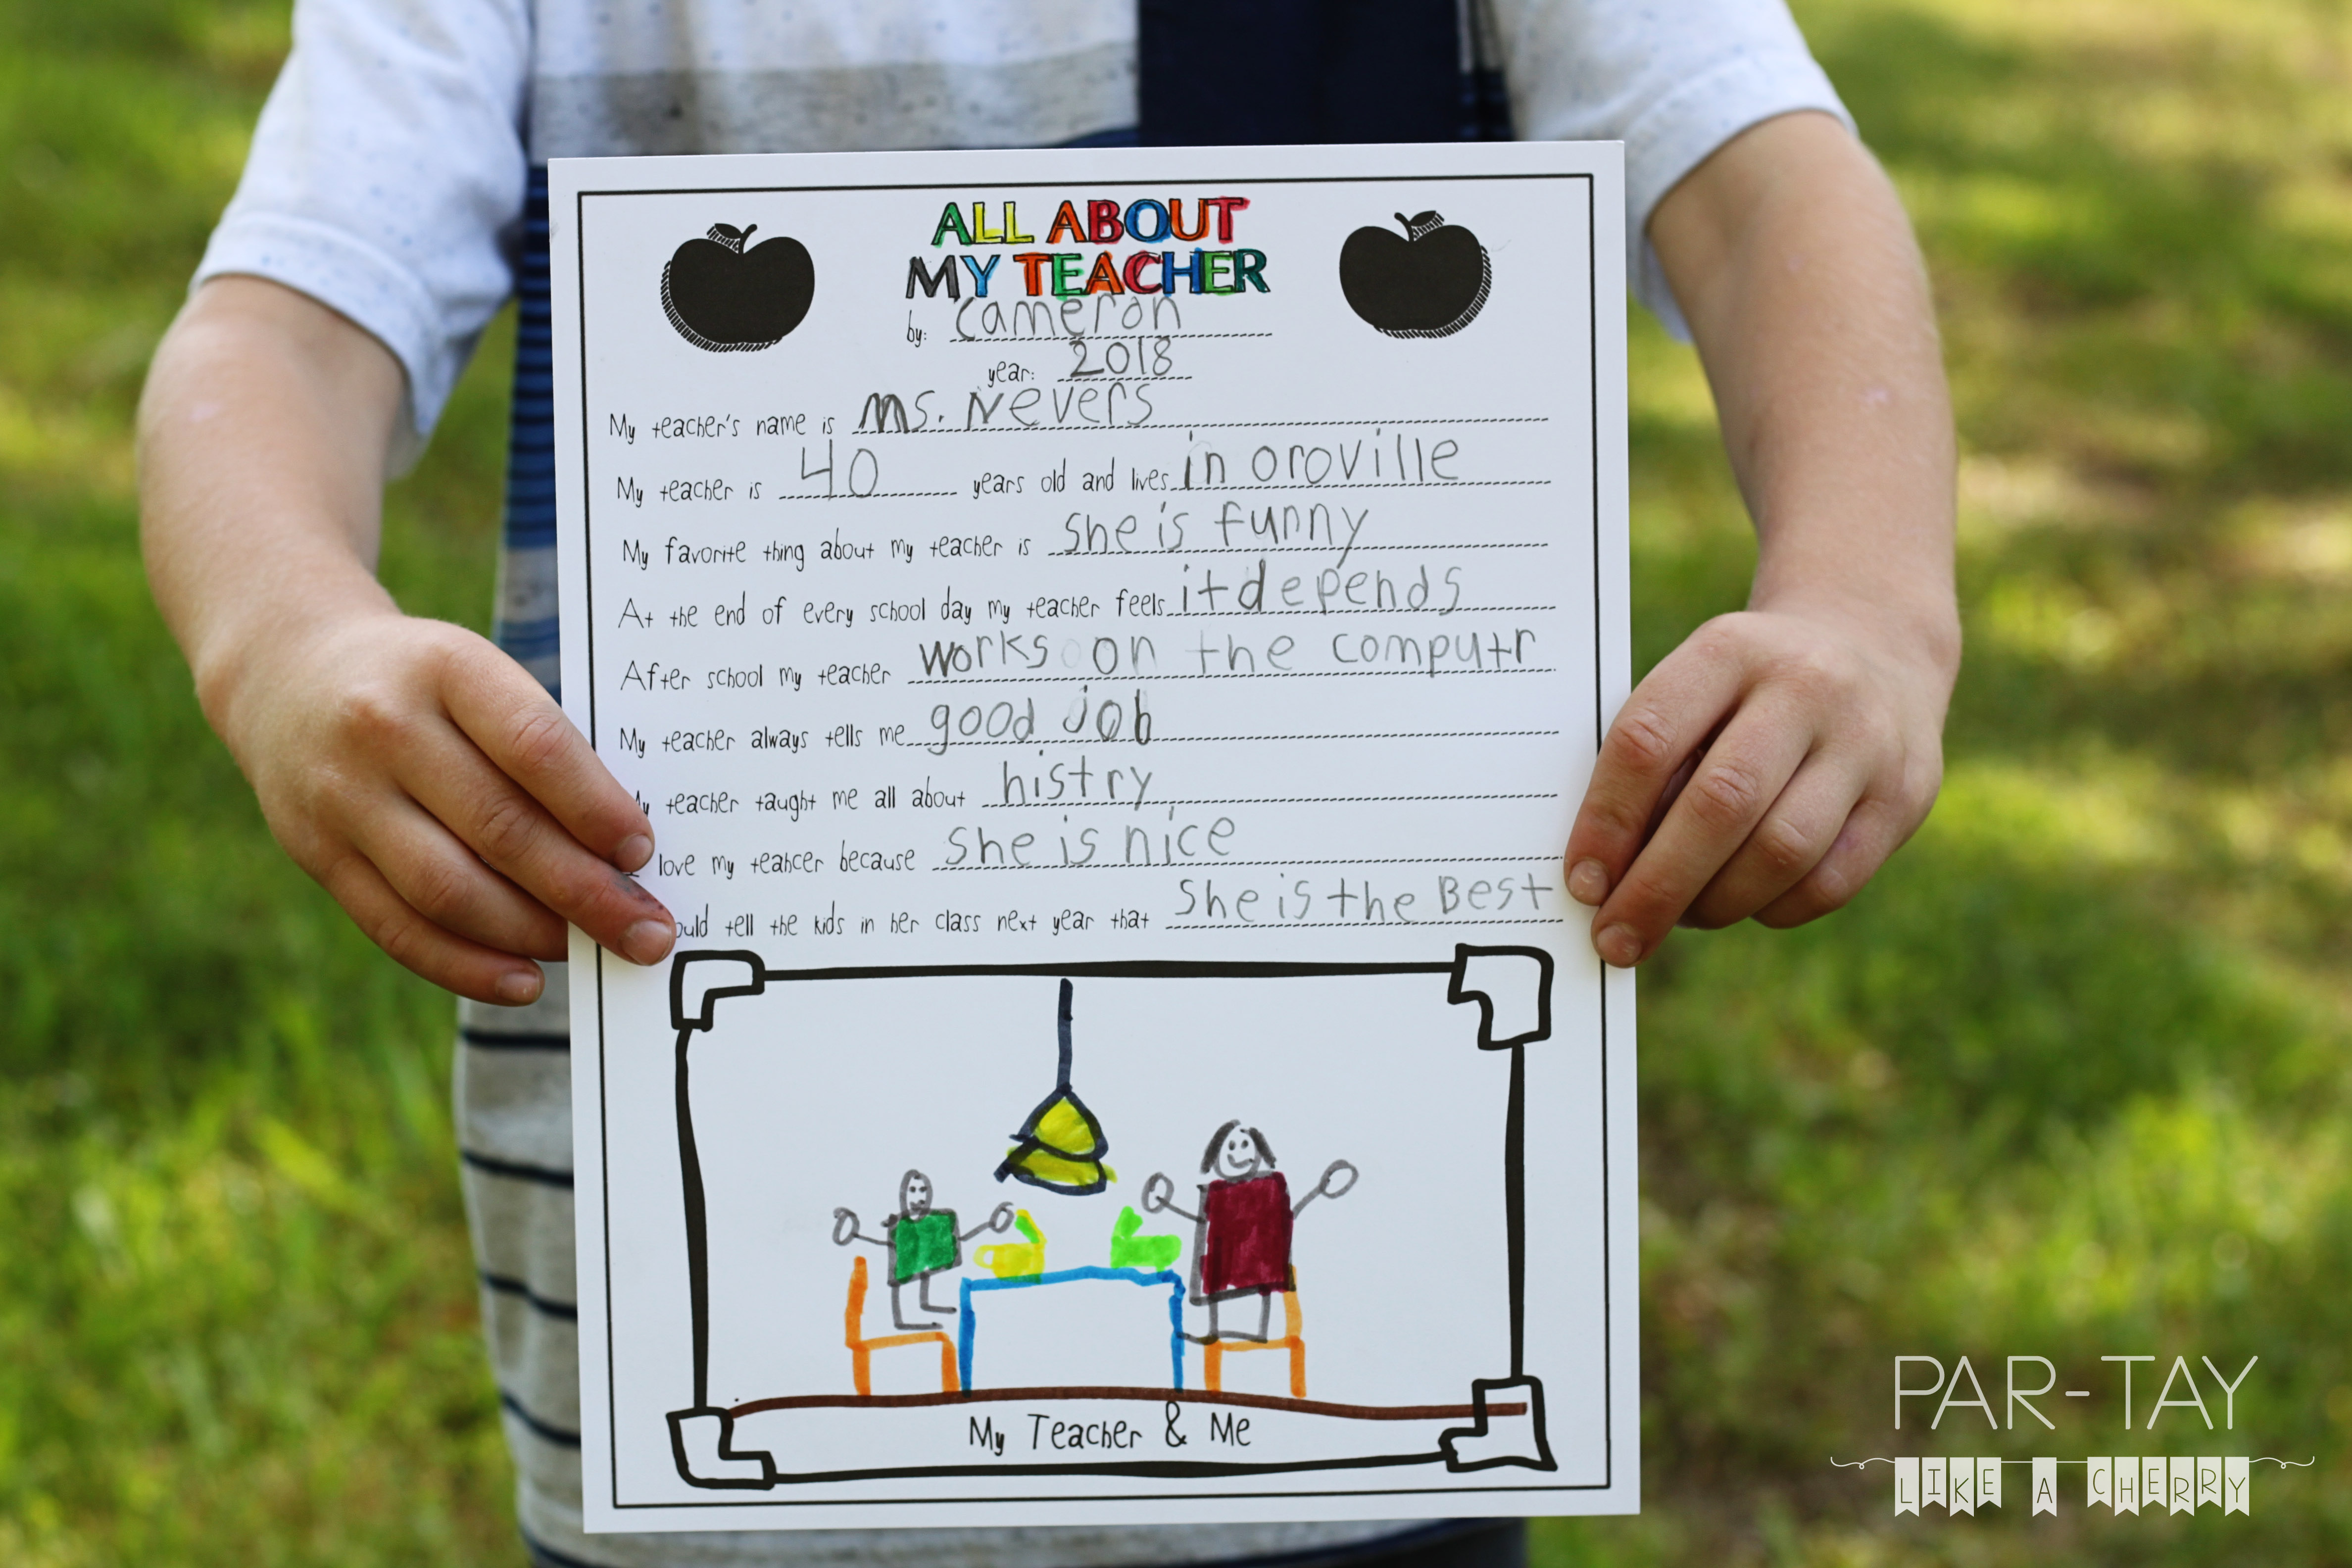 photograph about All About My Teacher Free Printable called All Relating to My Trainer- Cost-free Trainer Appreciation Printable